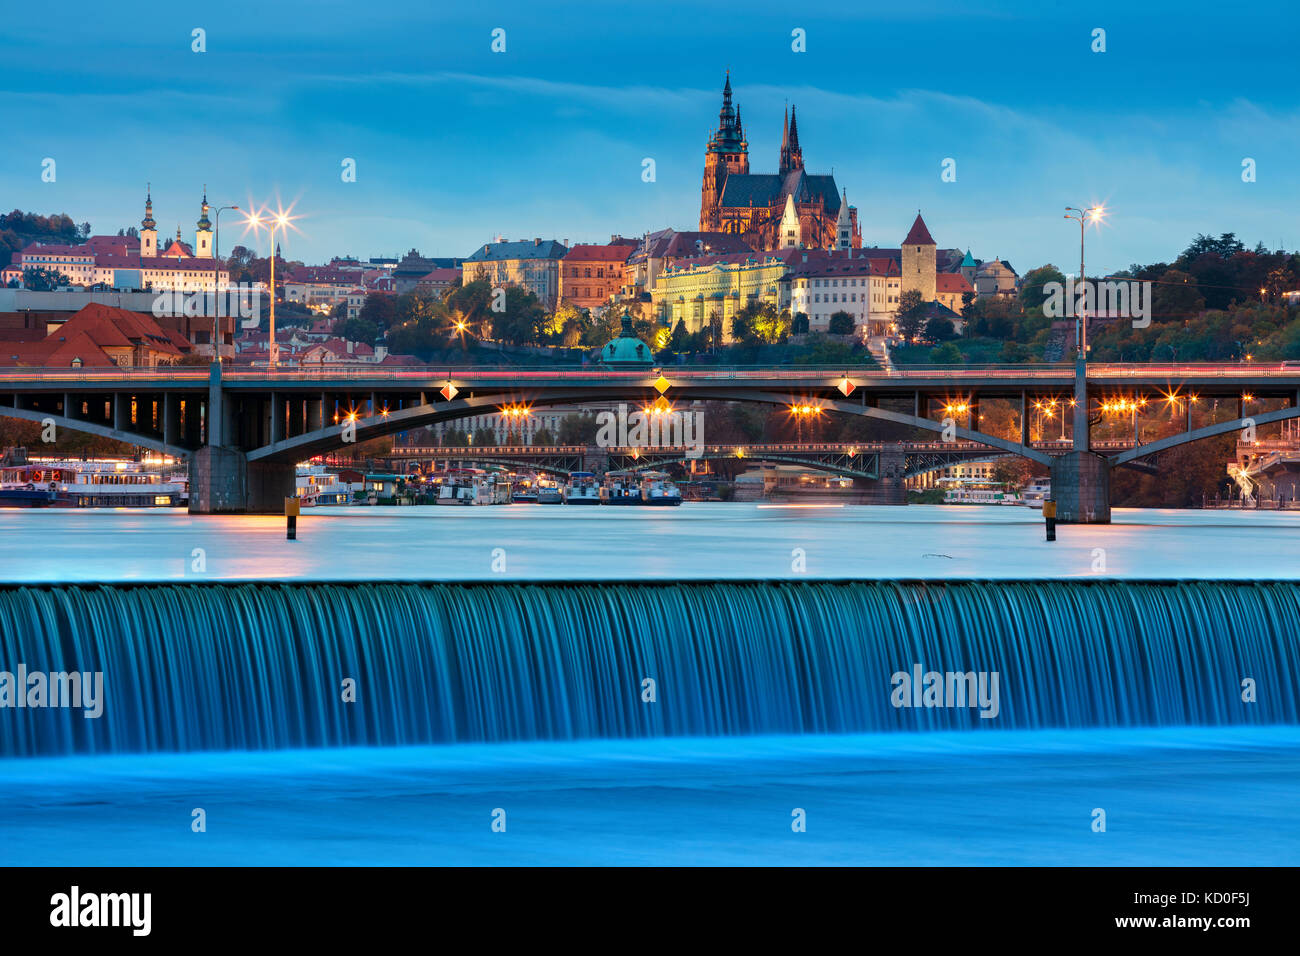 Prague. Image of Prague, capital city of Czech Republic, during twilight blue hour. - Stock Image